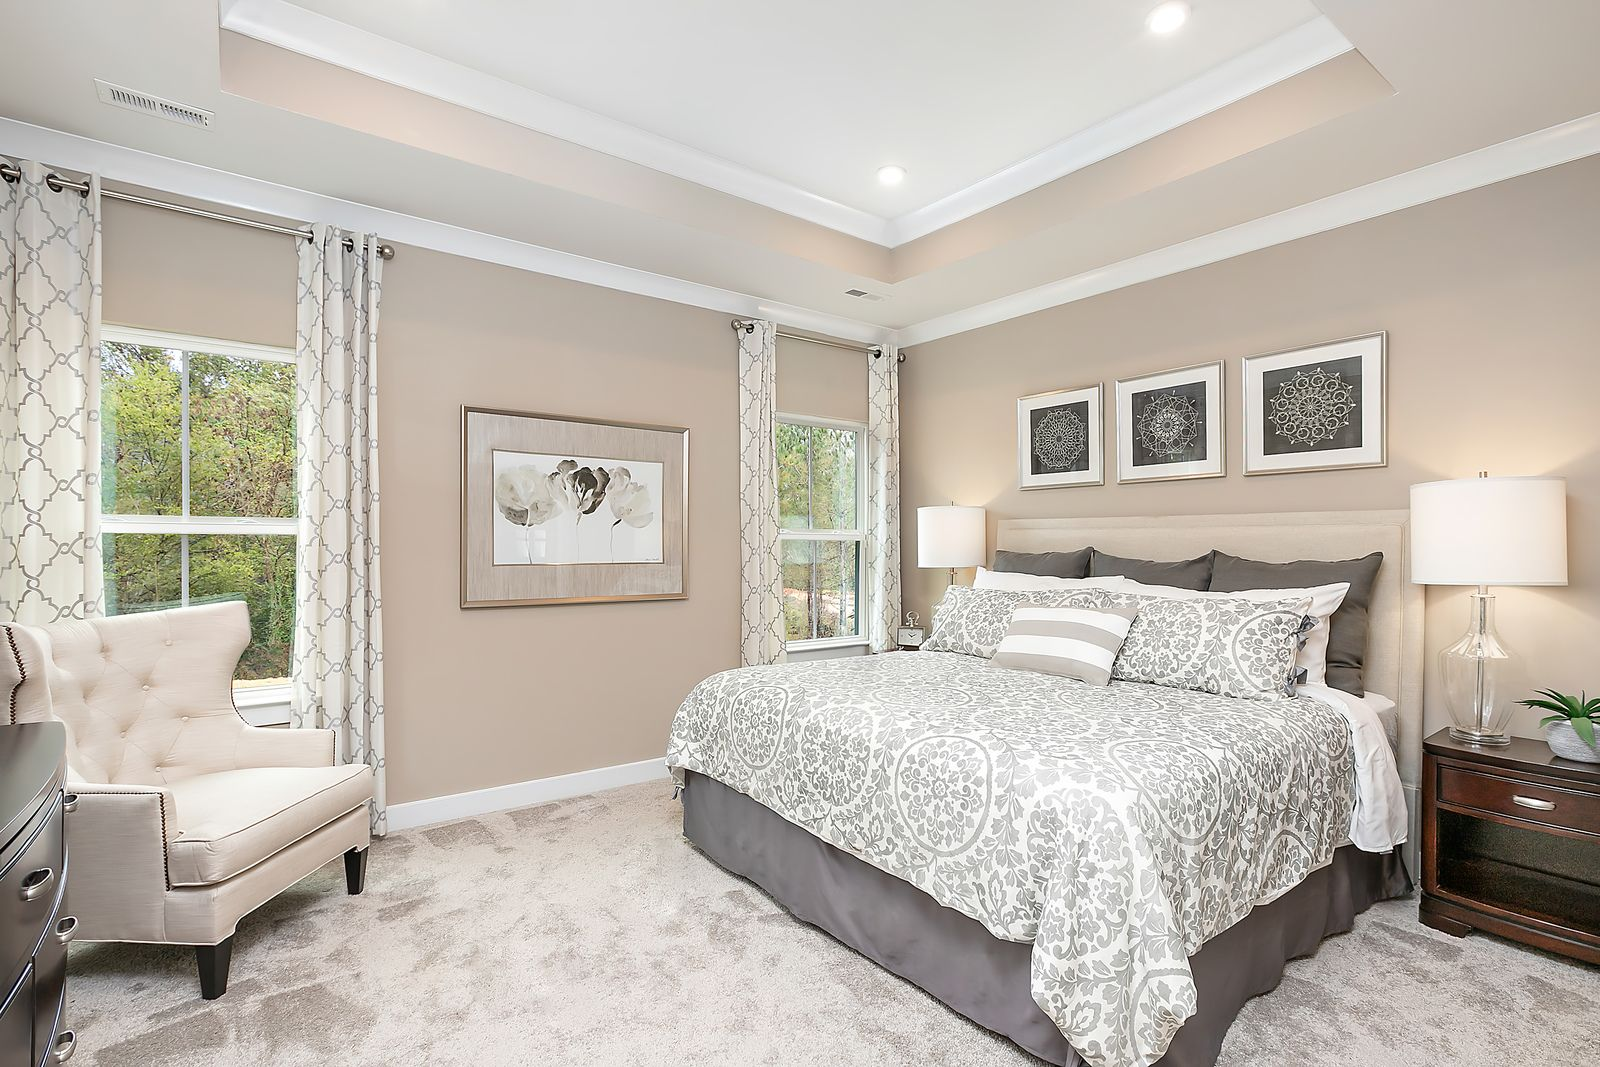 Bedroom featured in the Bramante 2-Story By Ryan Homes in Charlotte, NC